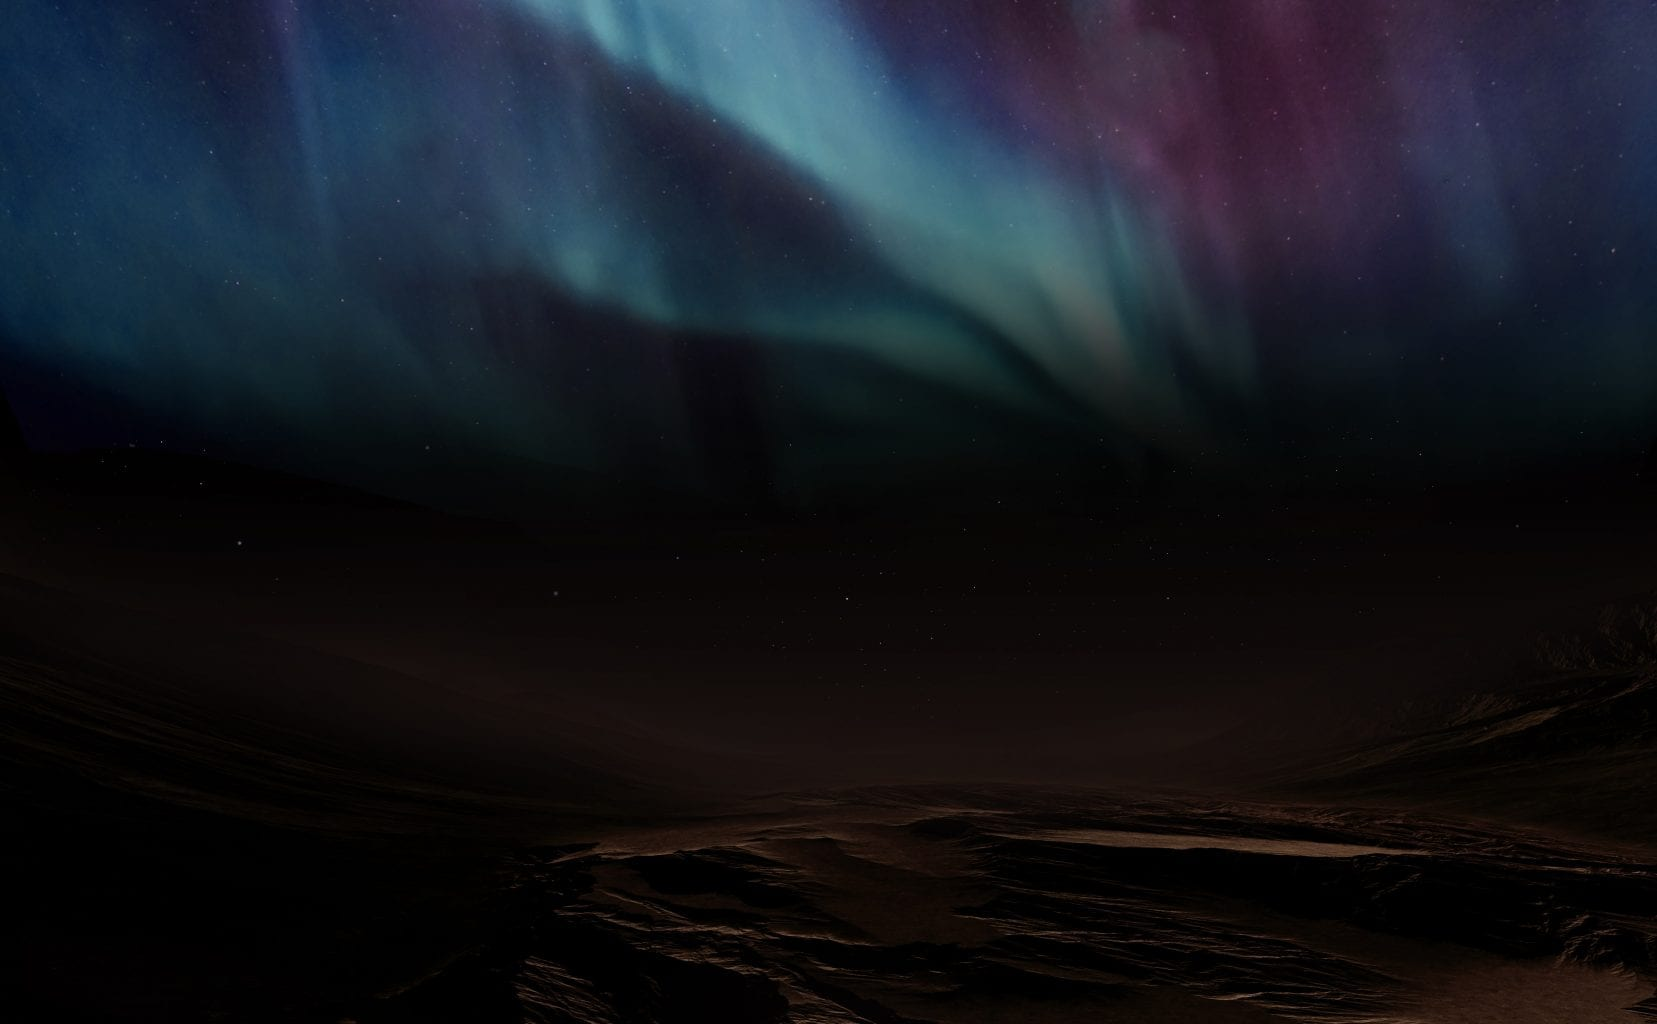 Artist's impression of the auroras as seen from the surface of Mars. Credit: Emirates Mars Mission